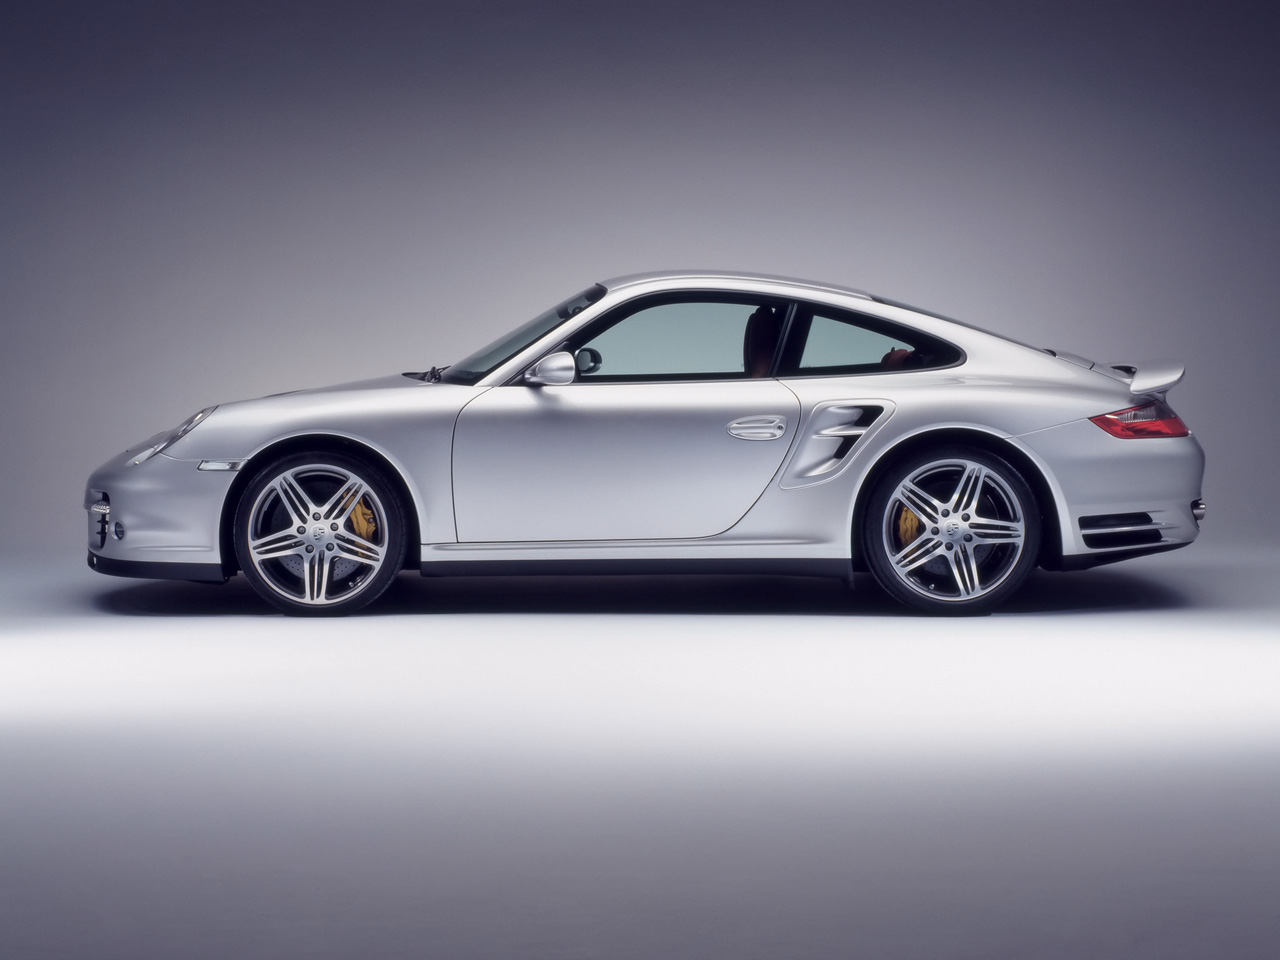 porsche 911 turbo s luxury and fast cars. Black Bedroom Furniture Sets. Home Design Ideas